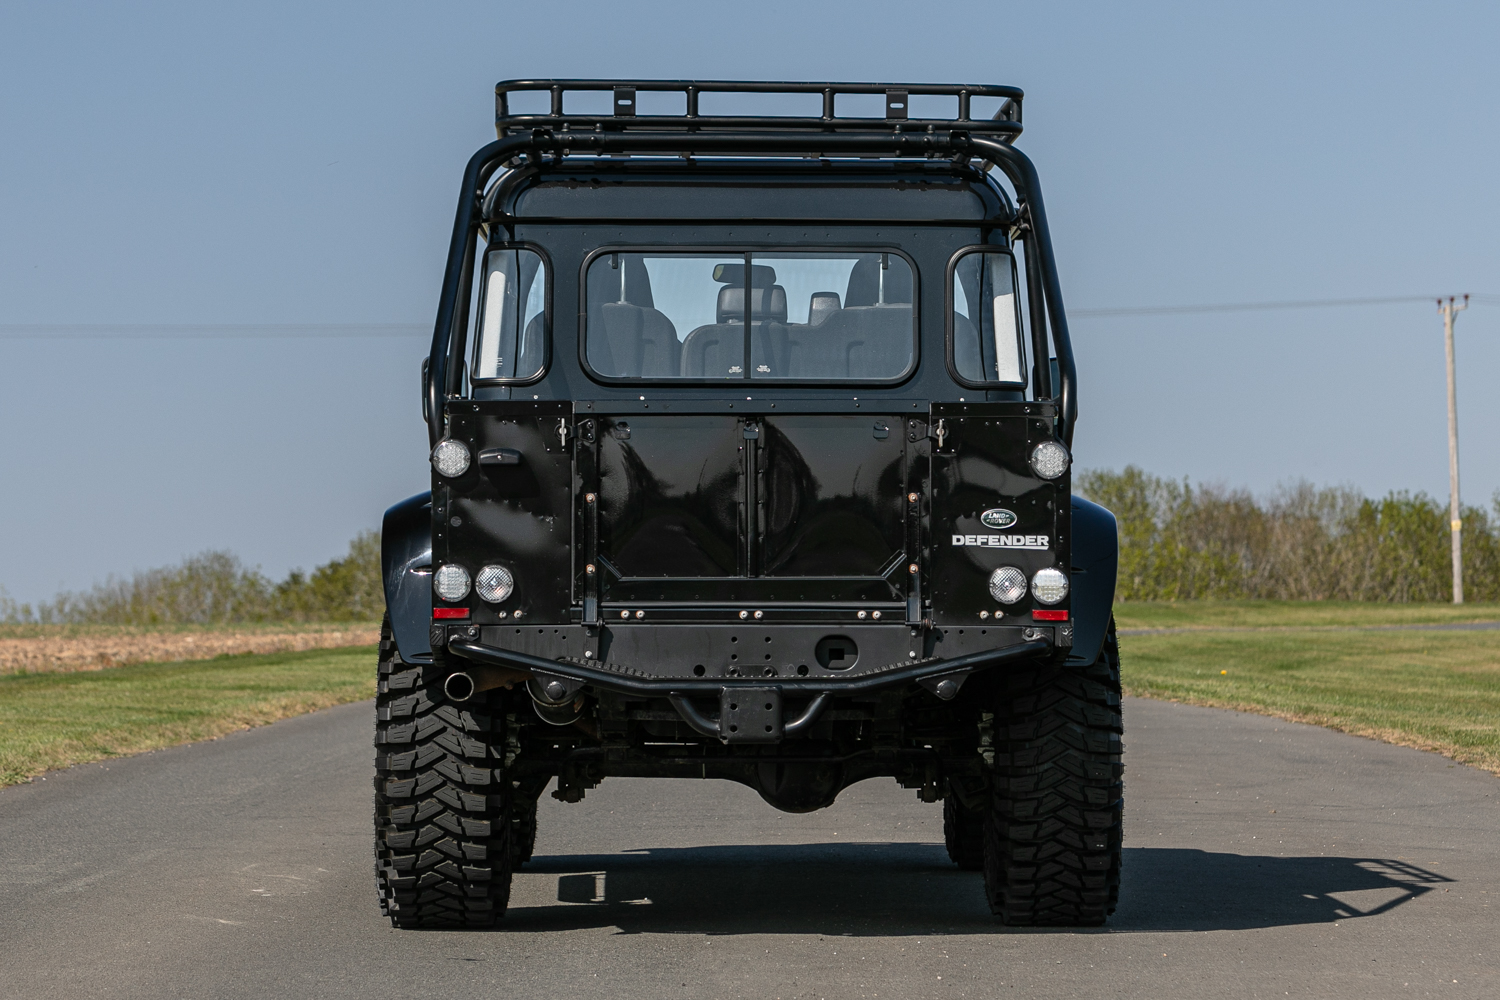 2015 Land Rover Defender 110 SVX 'Spectre' JB24 - Image 5 of 26